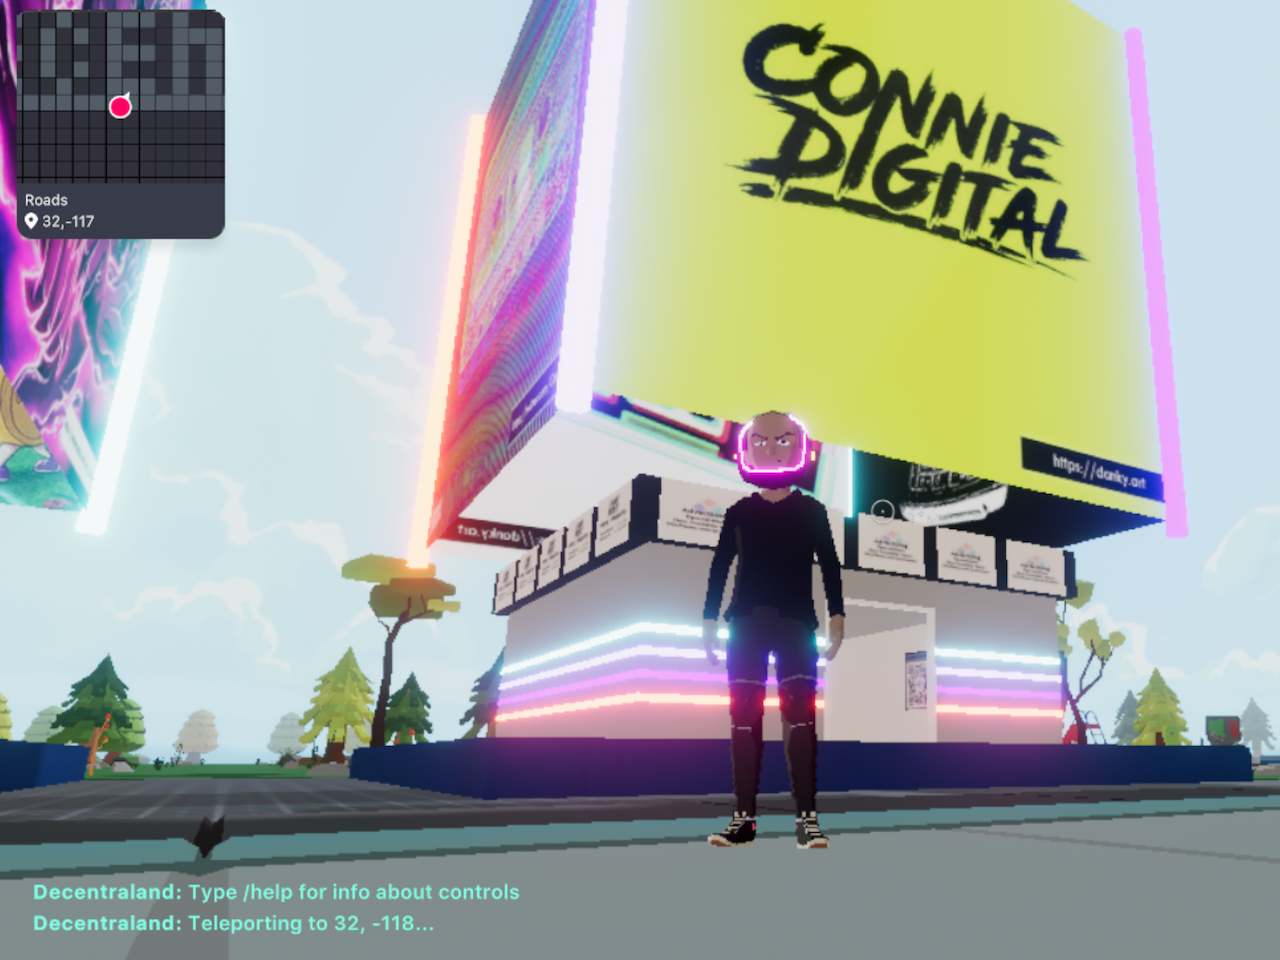 Connie Digital Virtual Art Gallery_14_Decentraland